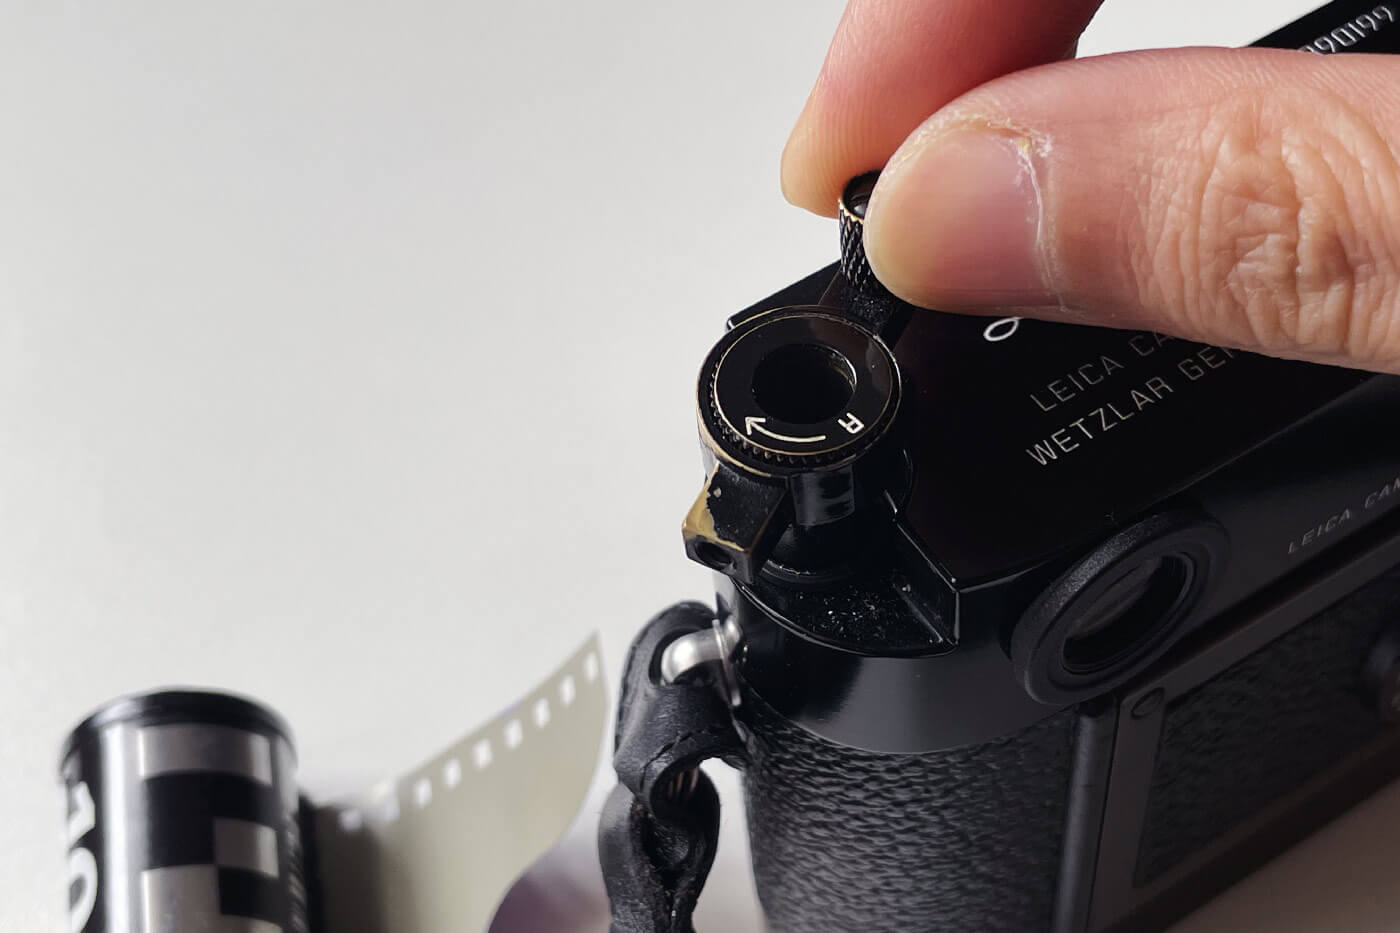 how-to-load-film-into-35mm-film-camera-135-extra-frame-properly-correct-way-best-check-beginner-tips-guide-advancing-first-frame-knob-rewind-tension